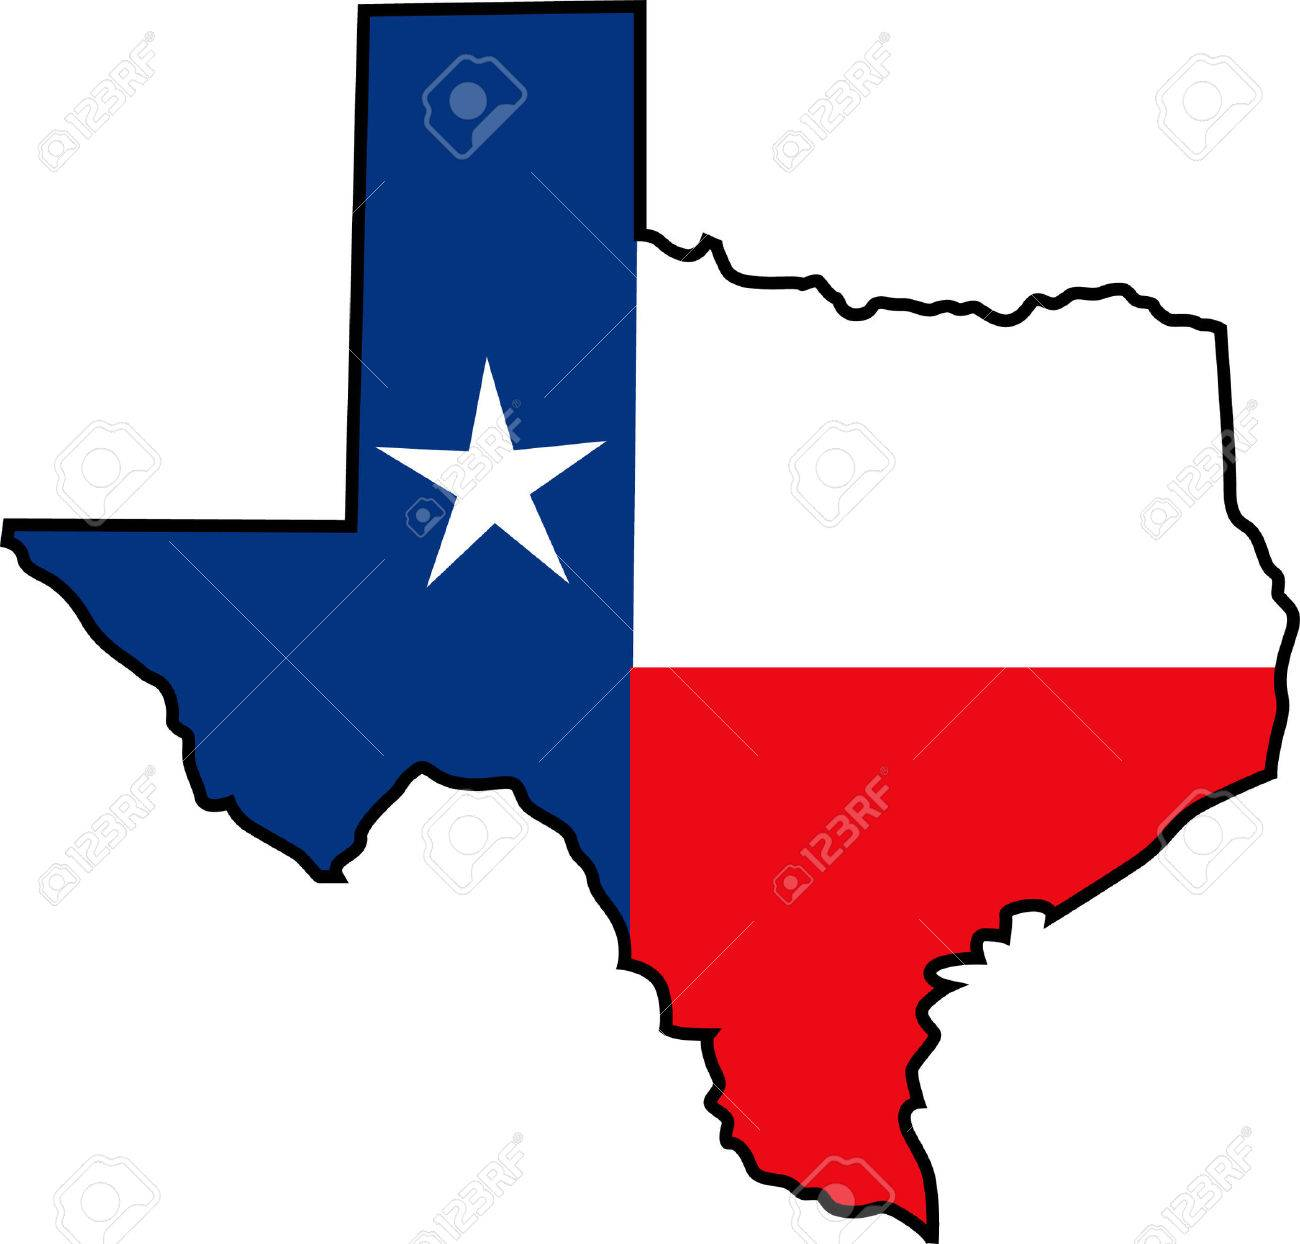 The Texas star is a perfect addition to your Texan proud theme. Get these designs from Great Notions. - 45057415